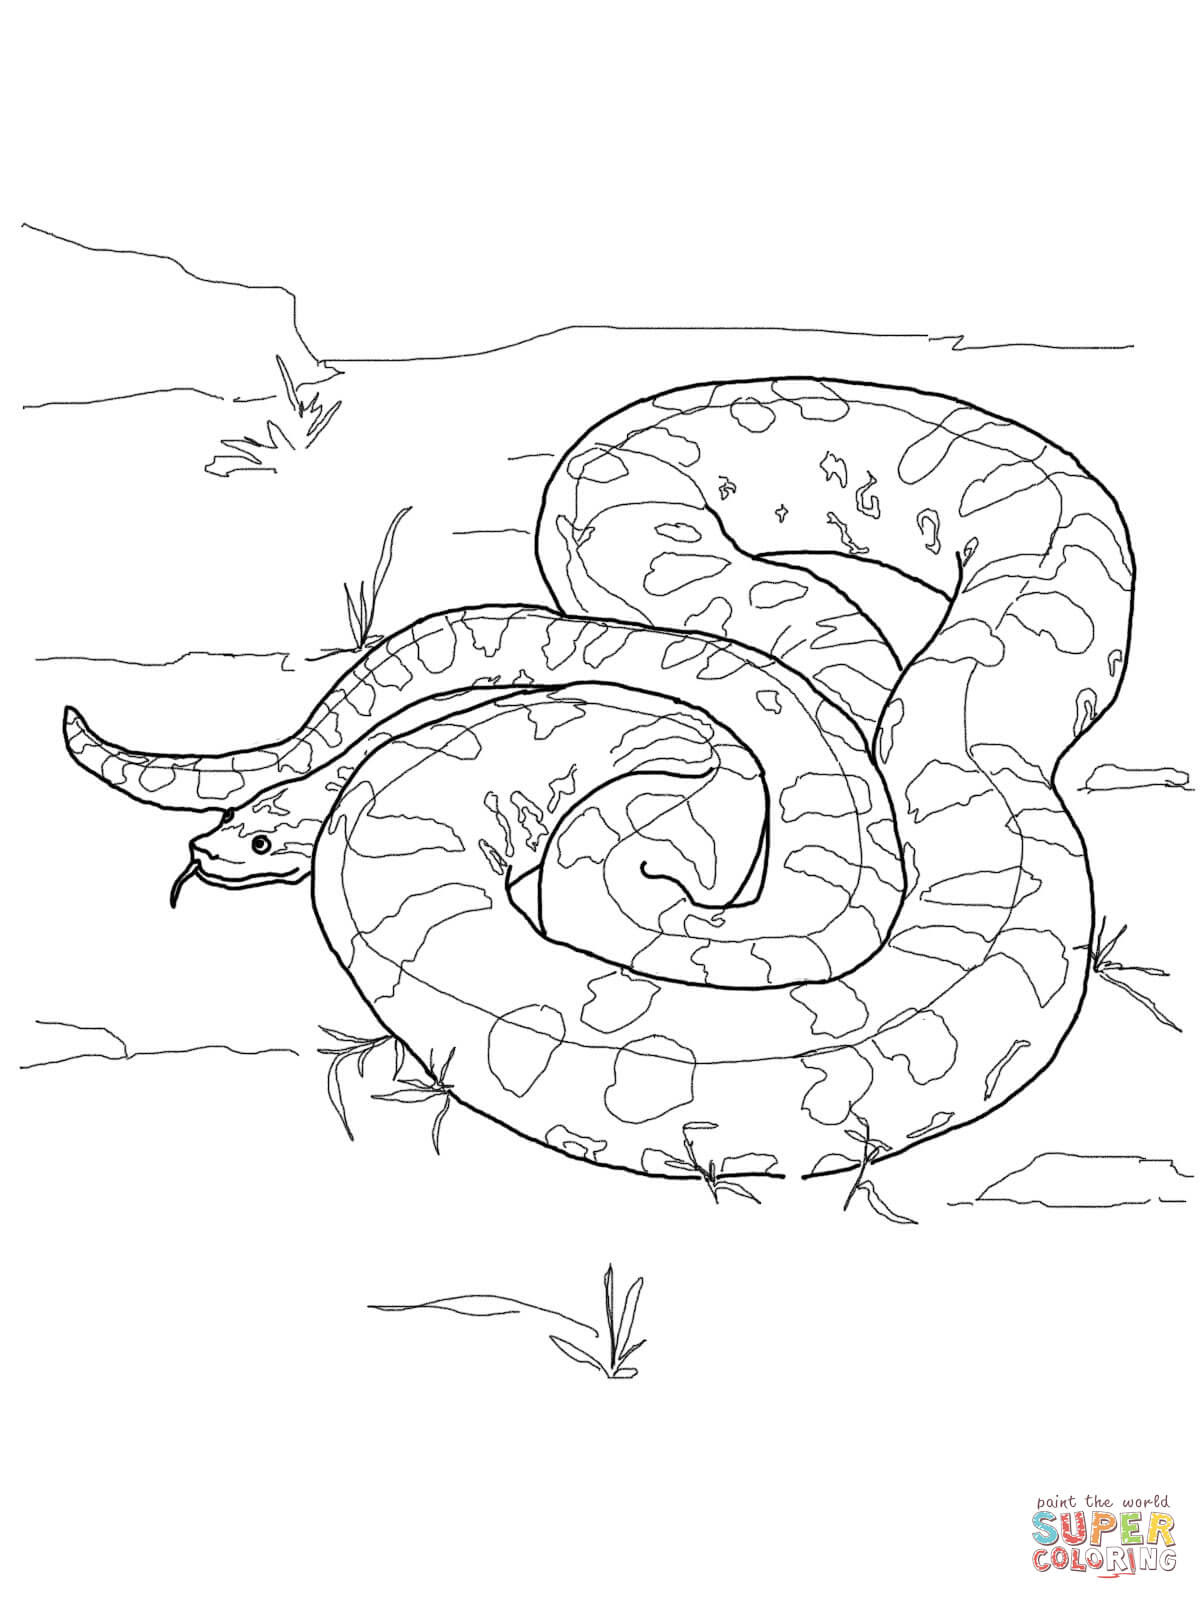 er sur la Anaconda vert anaconda de Barbour coloriages